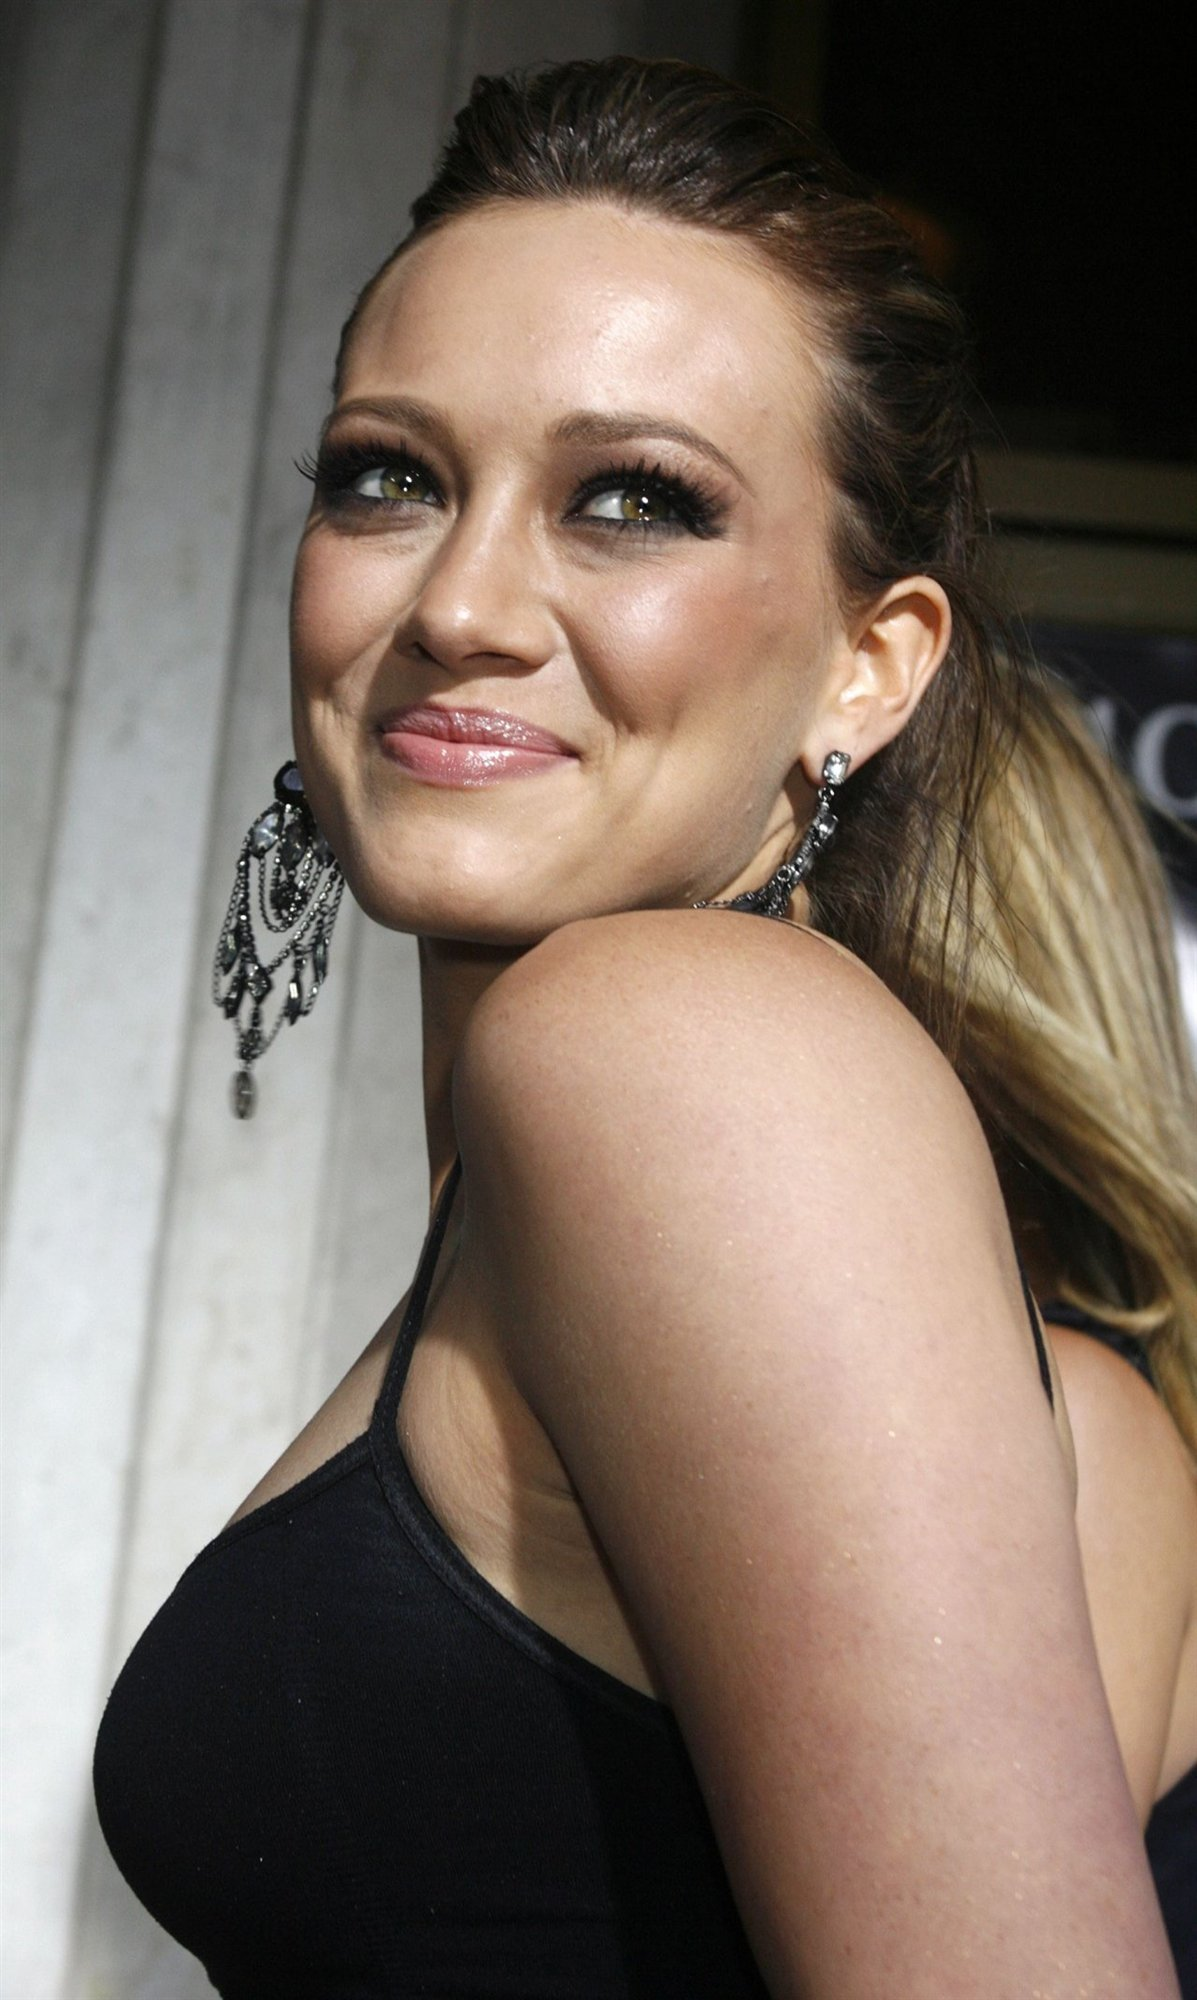 1000+ images about Hilary Duff Hair on Pinterest | Sex and ... Hilary Duff Mean